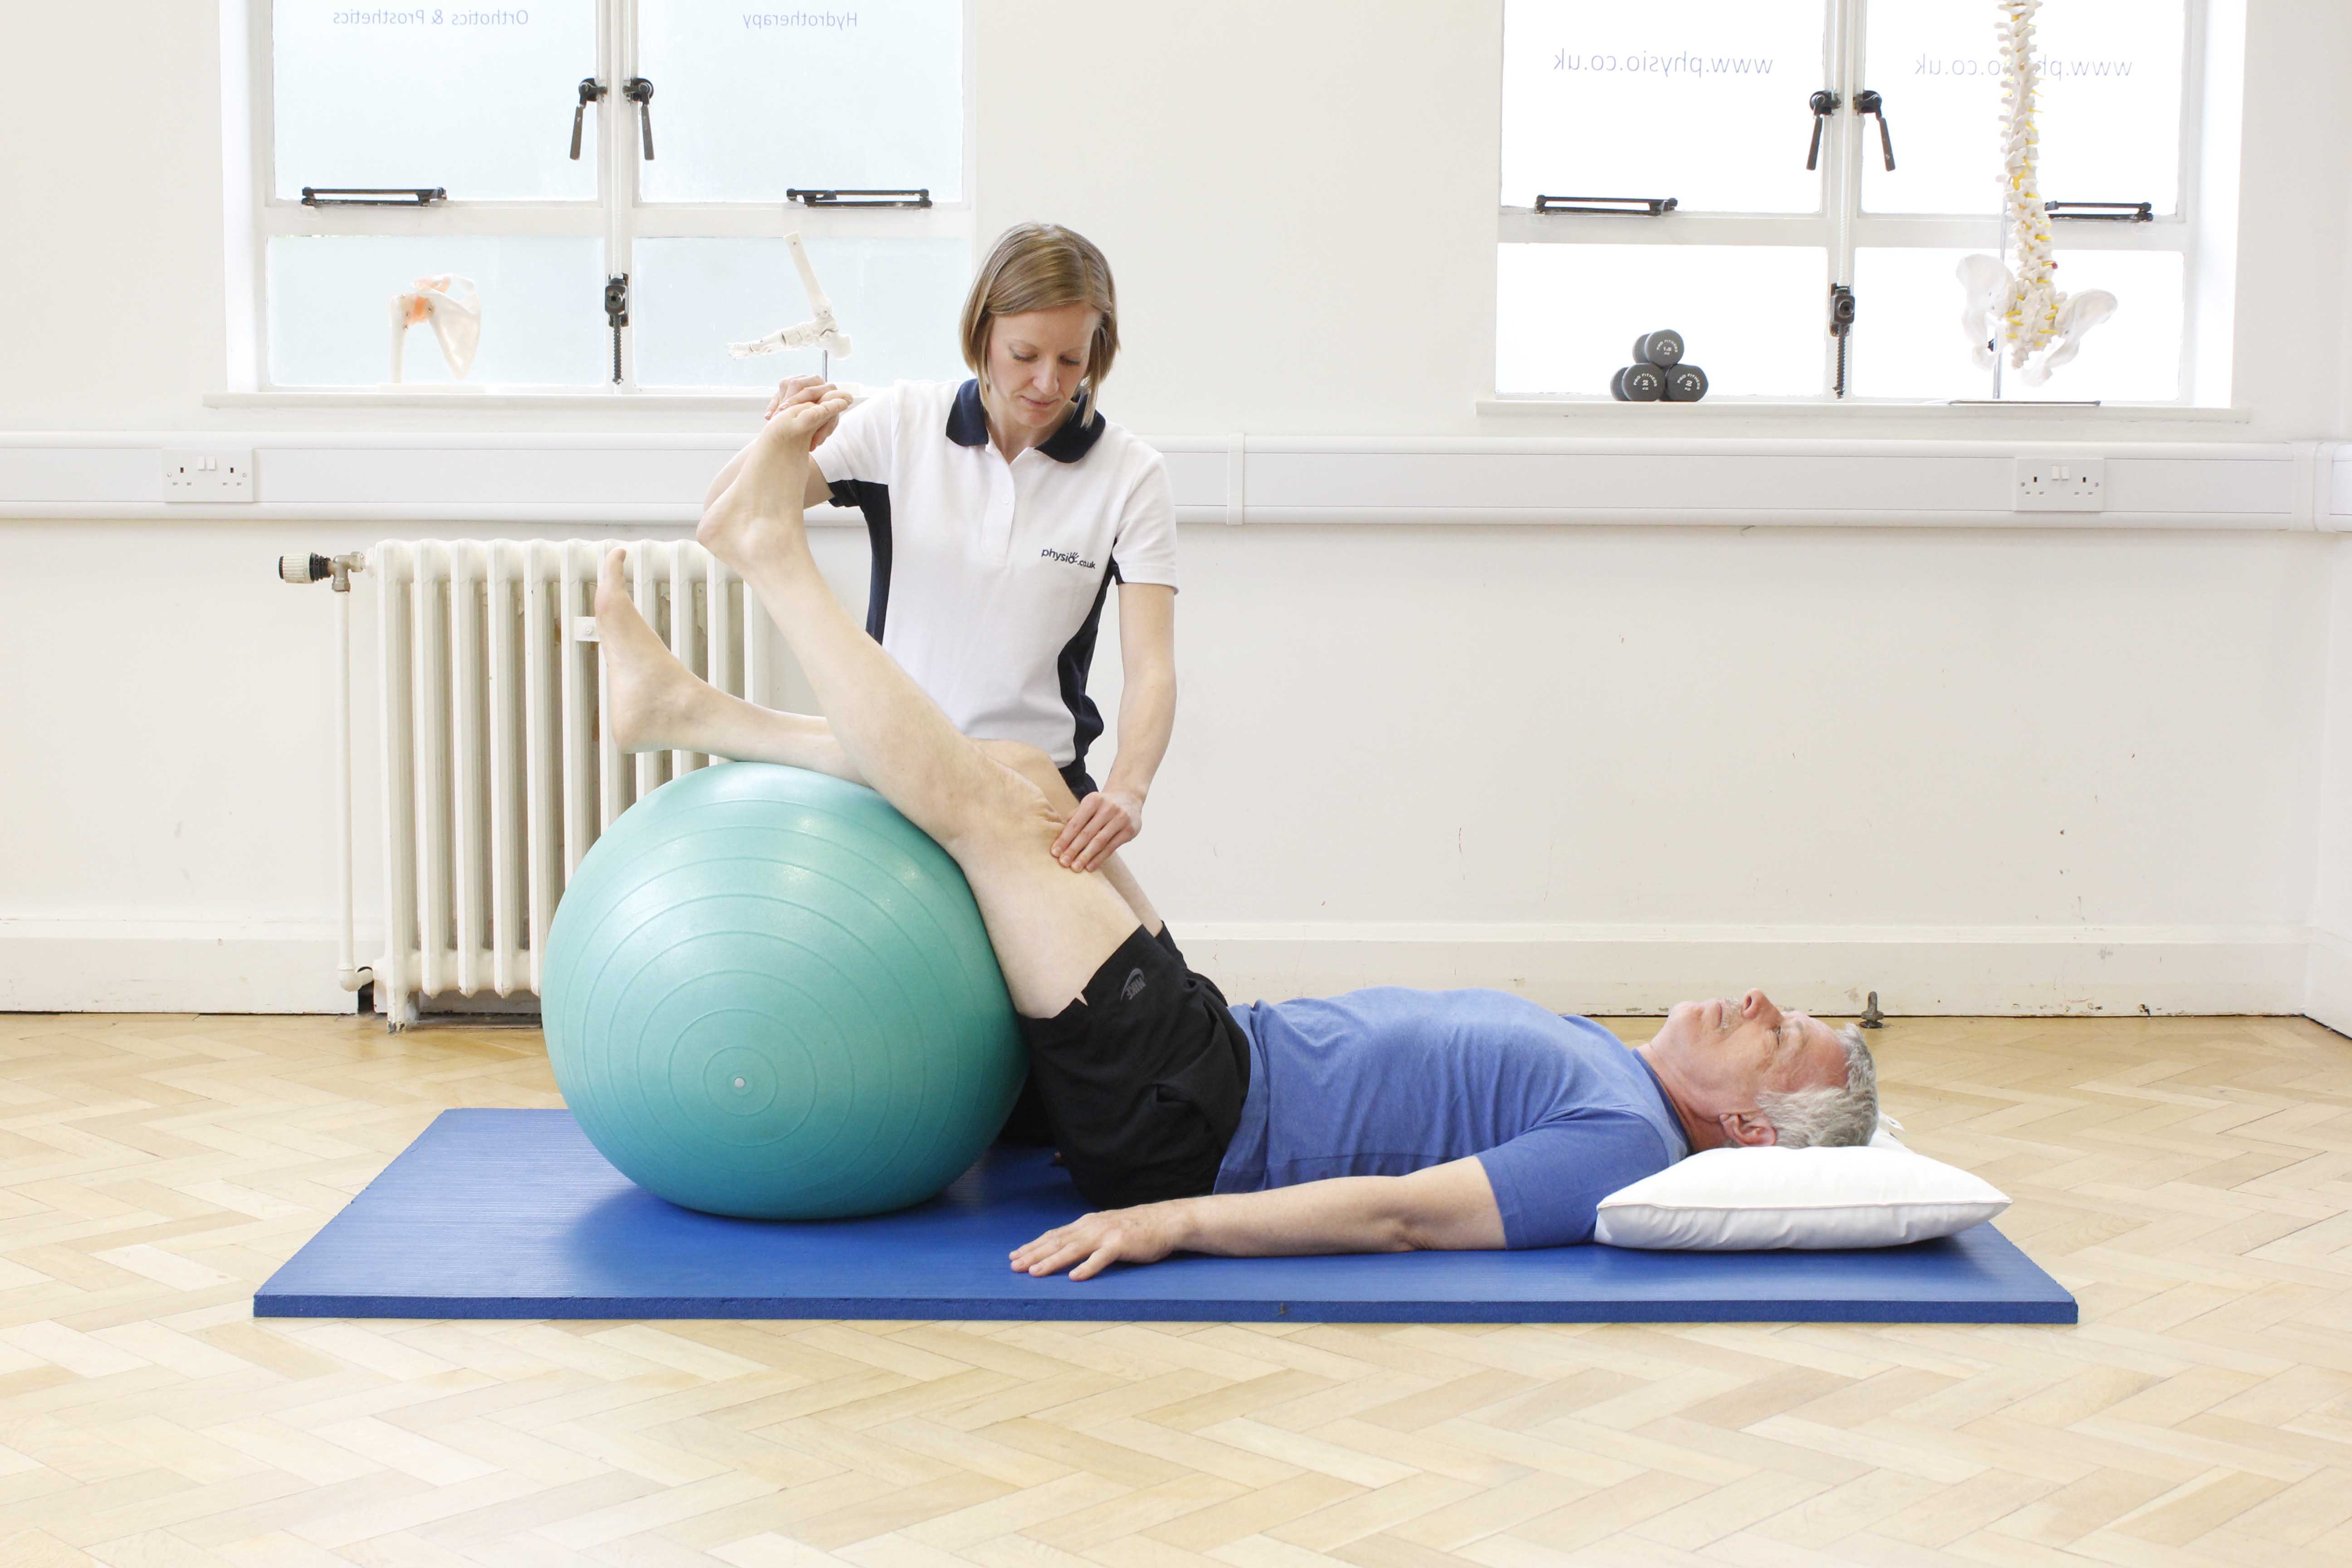 Quadriceps strengthening exercises supervised by neurological physiotherapist